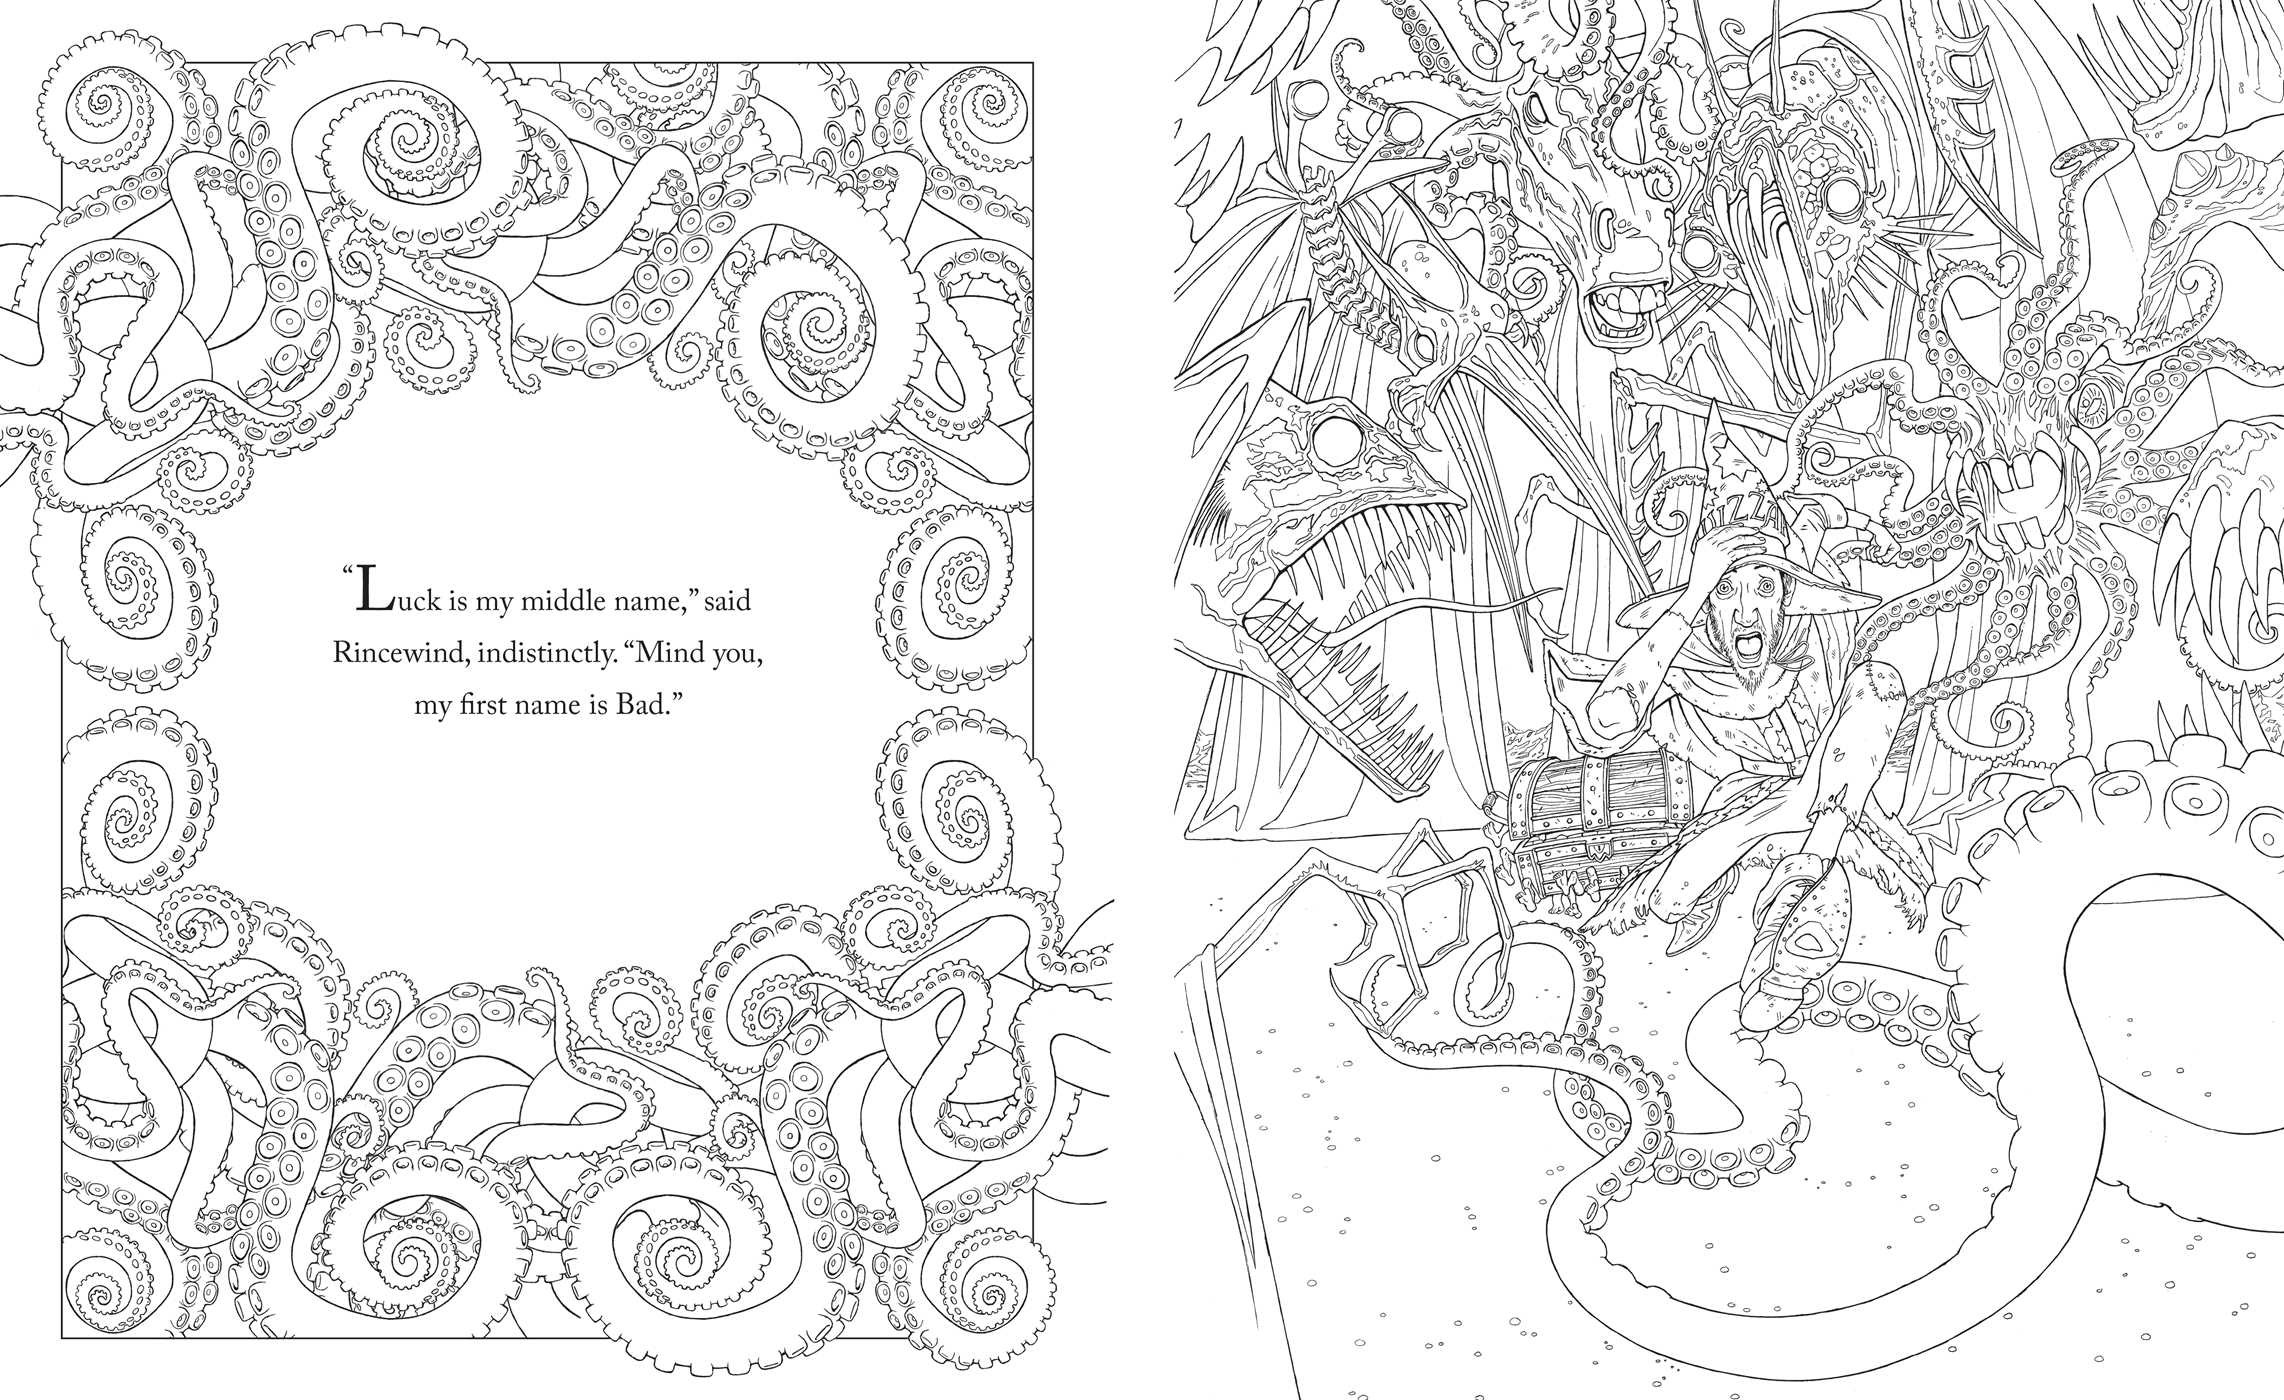 Terry pratchetts discworld coloring book 9781481498463.in03